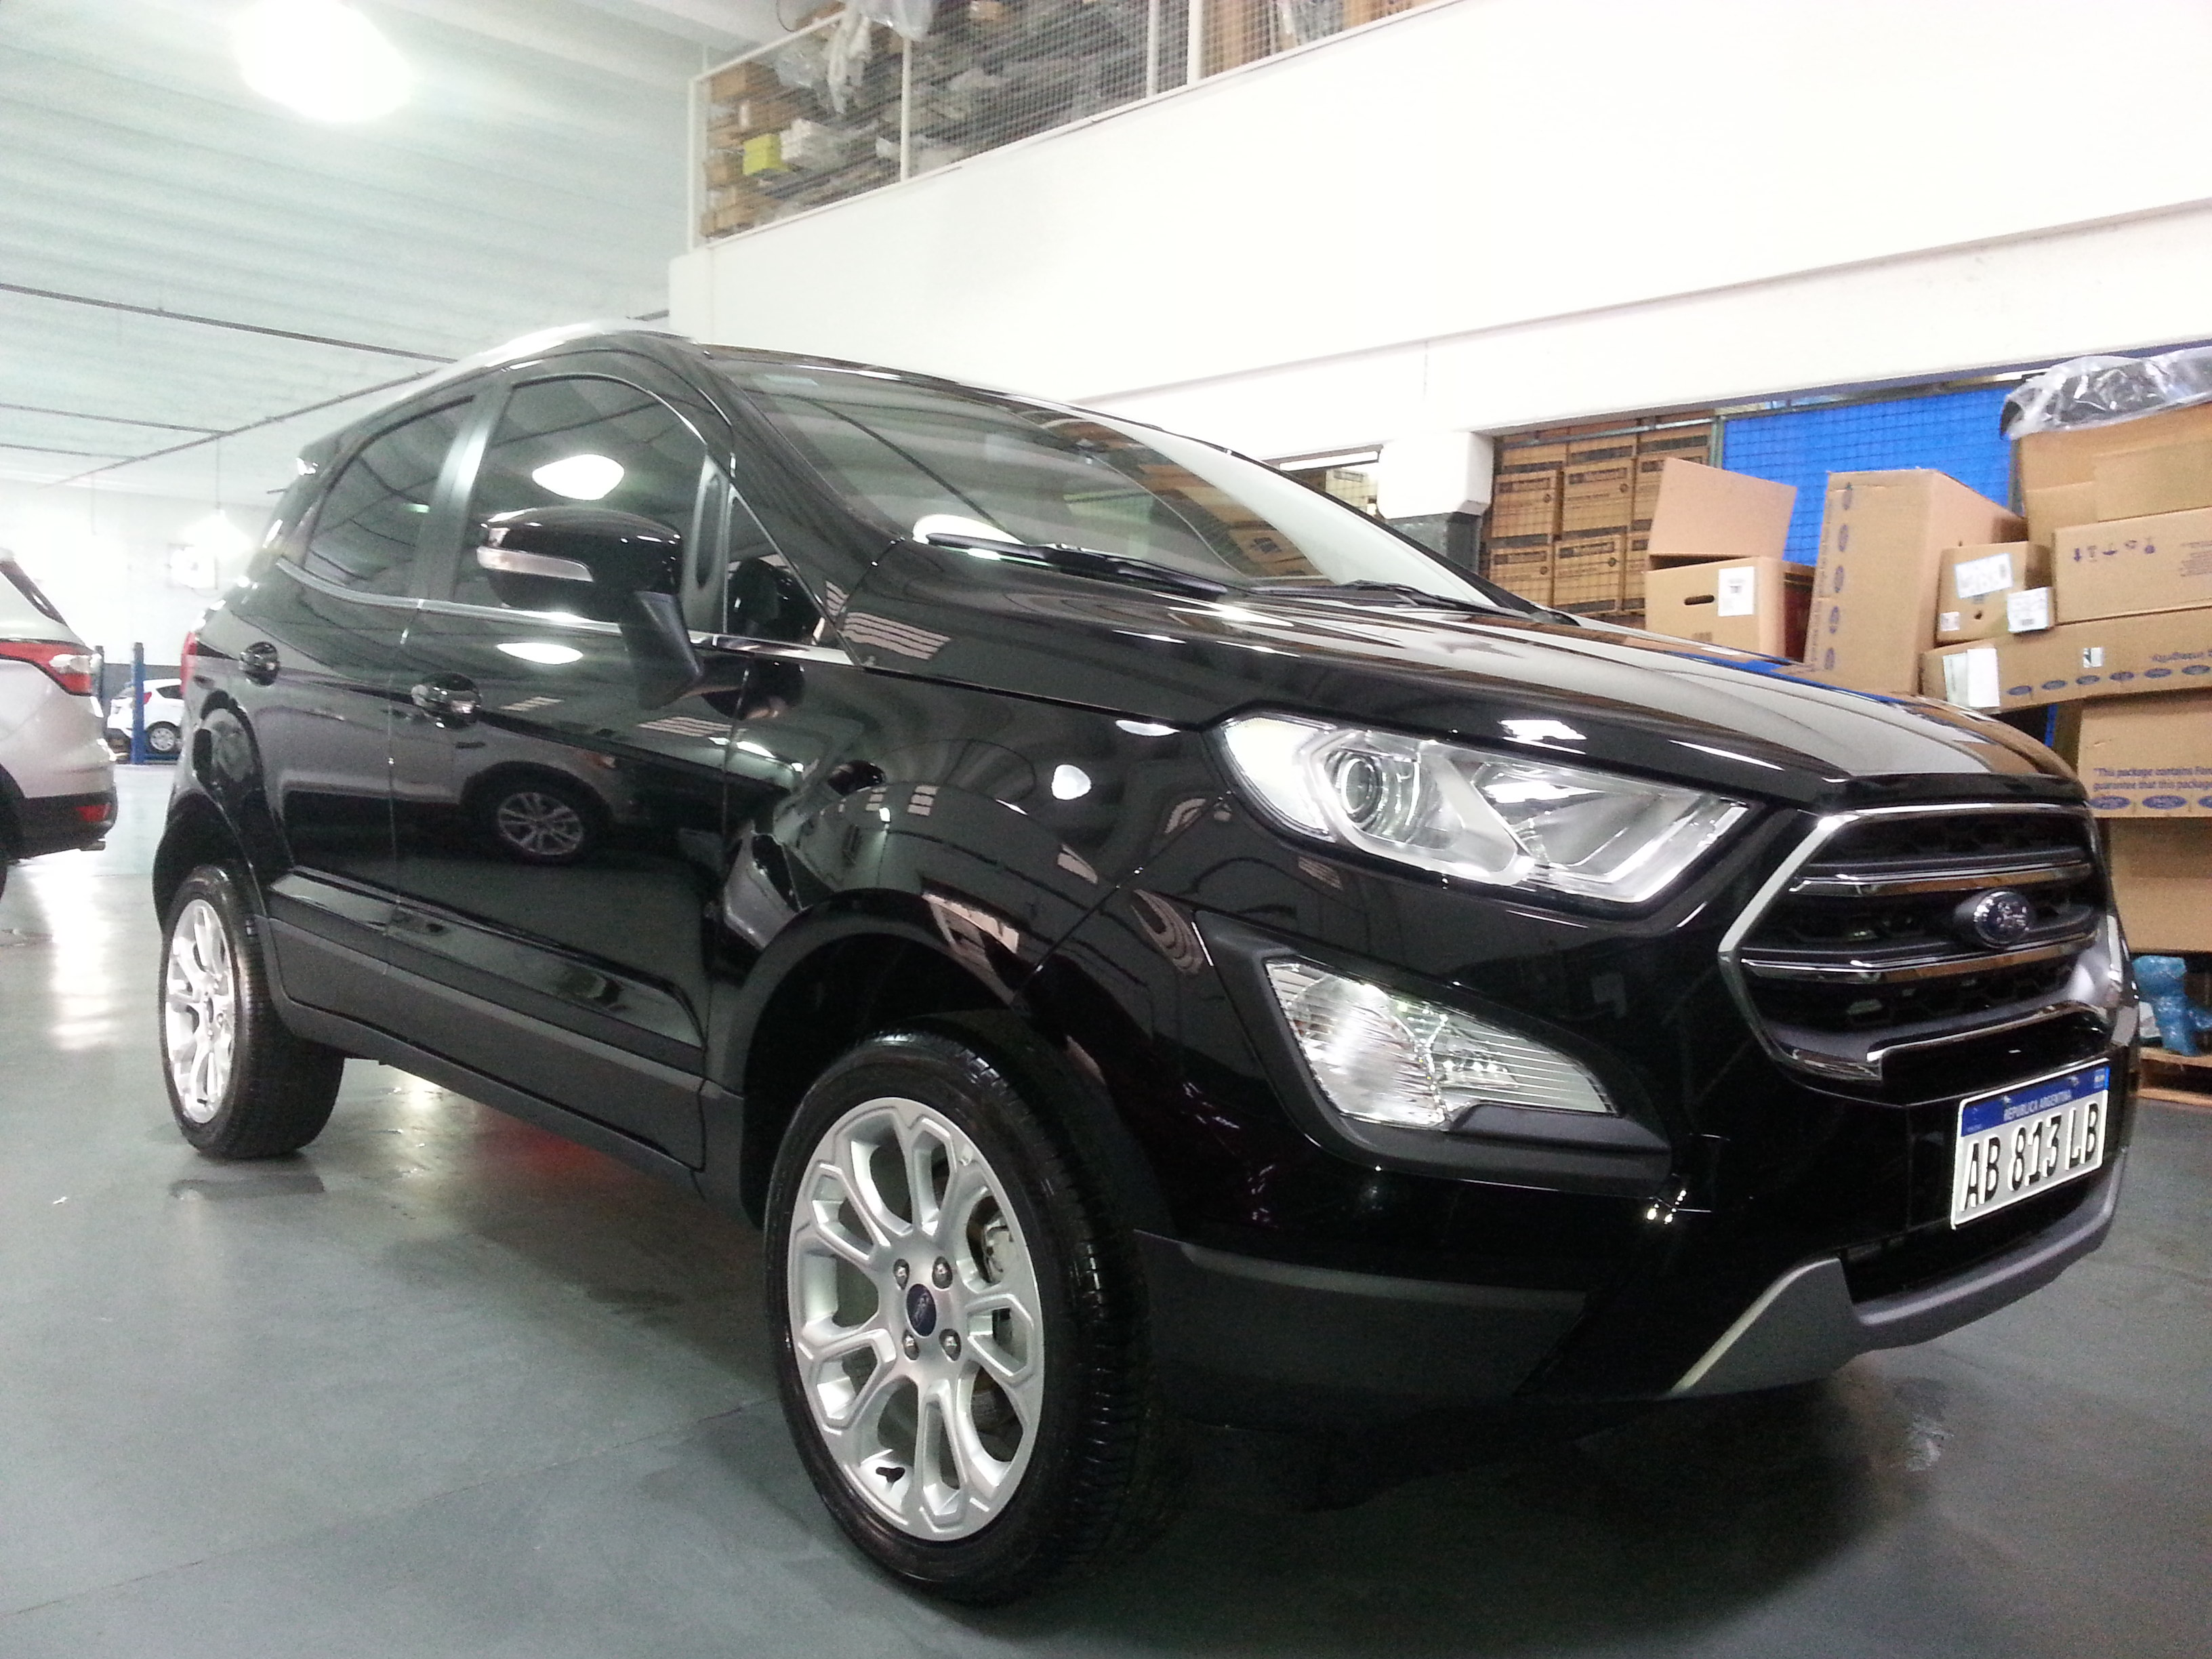 Ford Ecosport 2017 >> File Ford Ecosport 2017 Jpg Wikimedia Commons